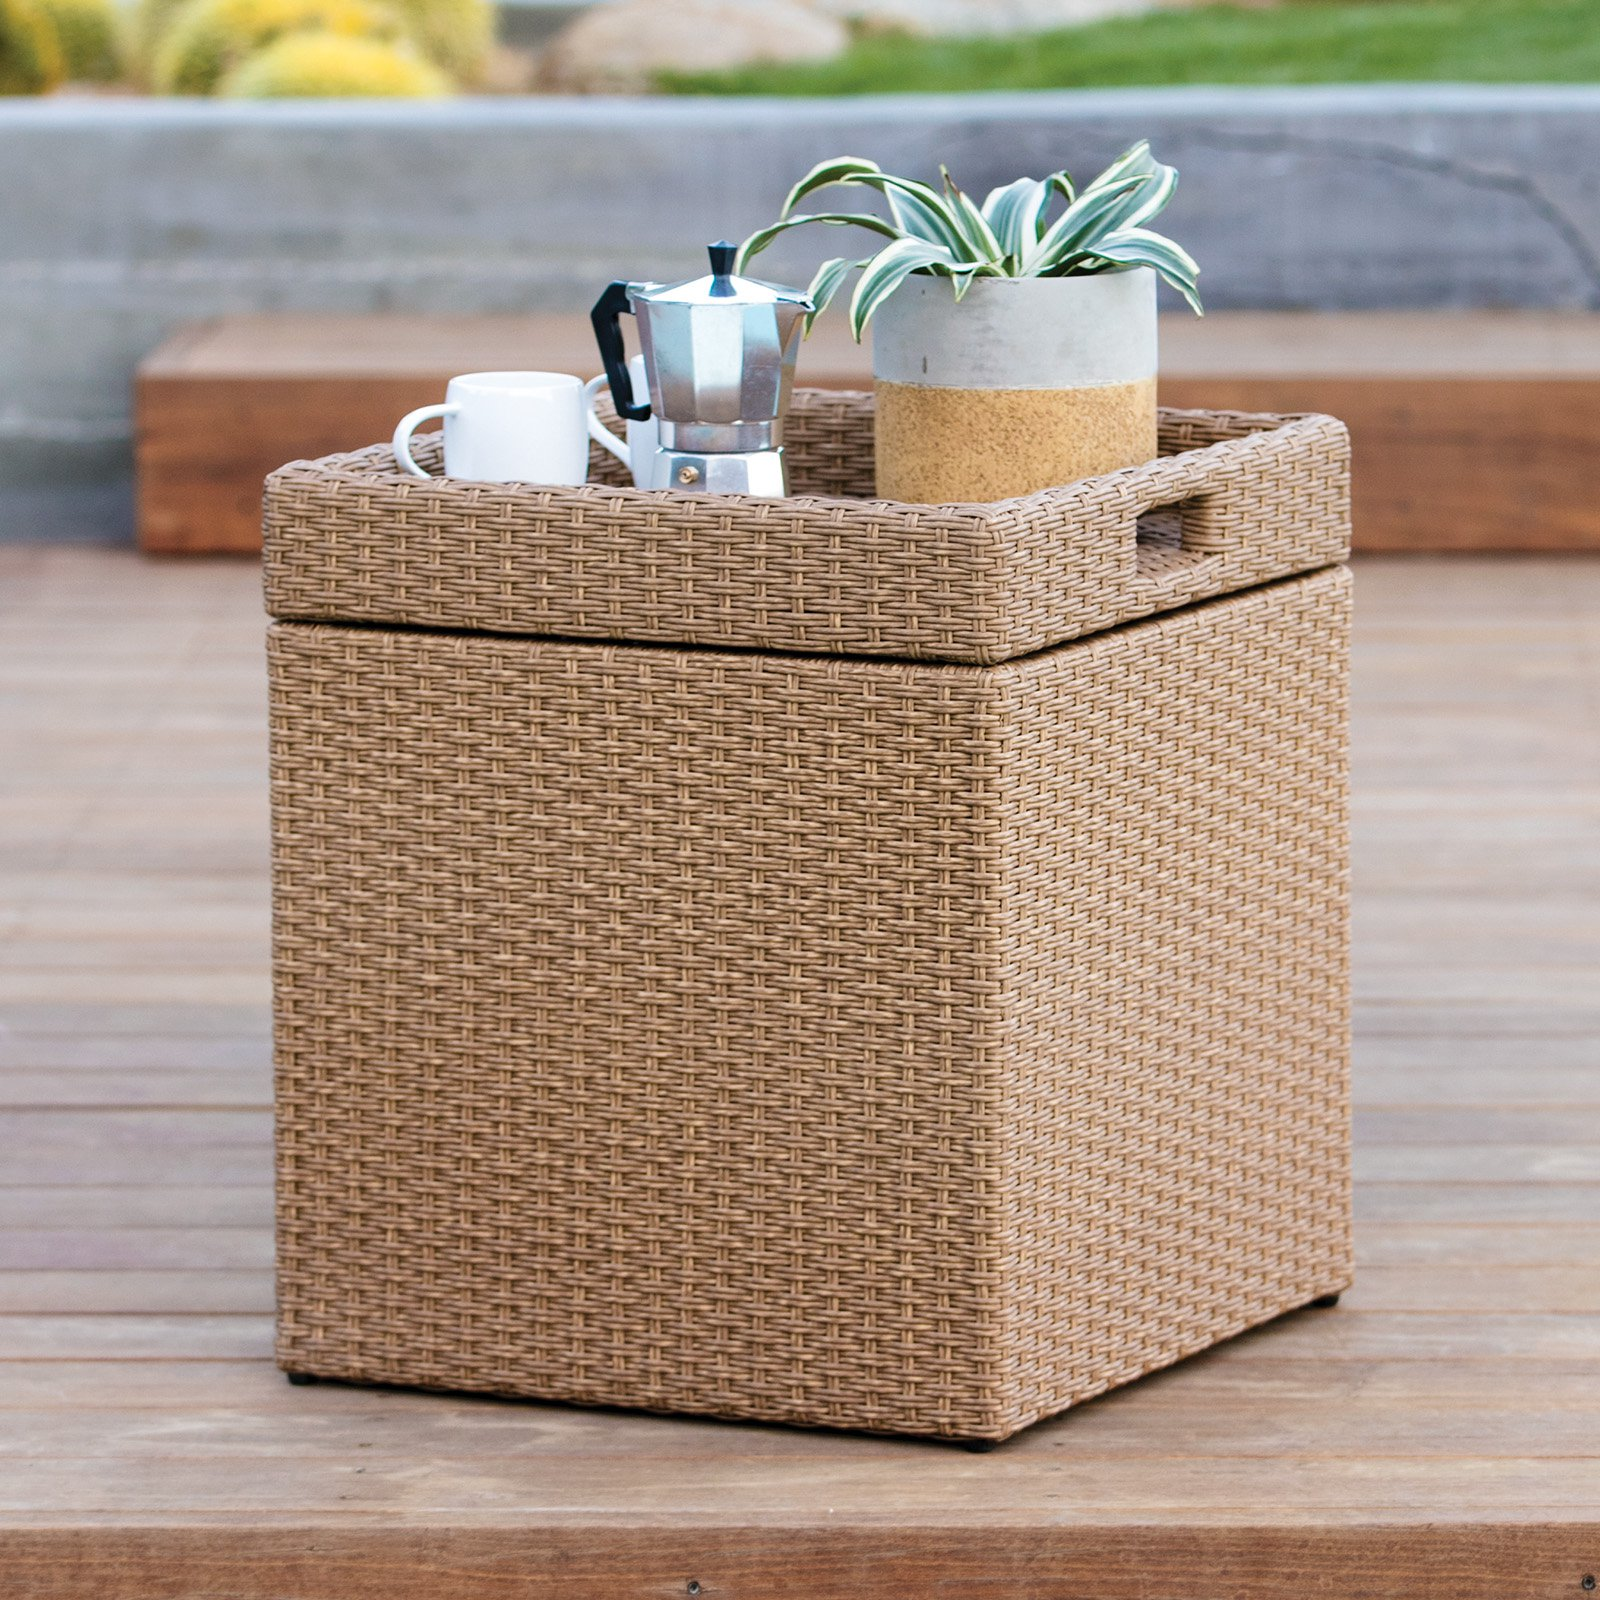 Coral Coast Tanna All Weather Wicker Outdoor Storage Cube With Tray Top    Honey Natural